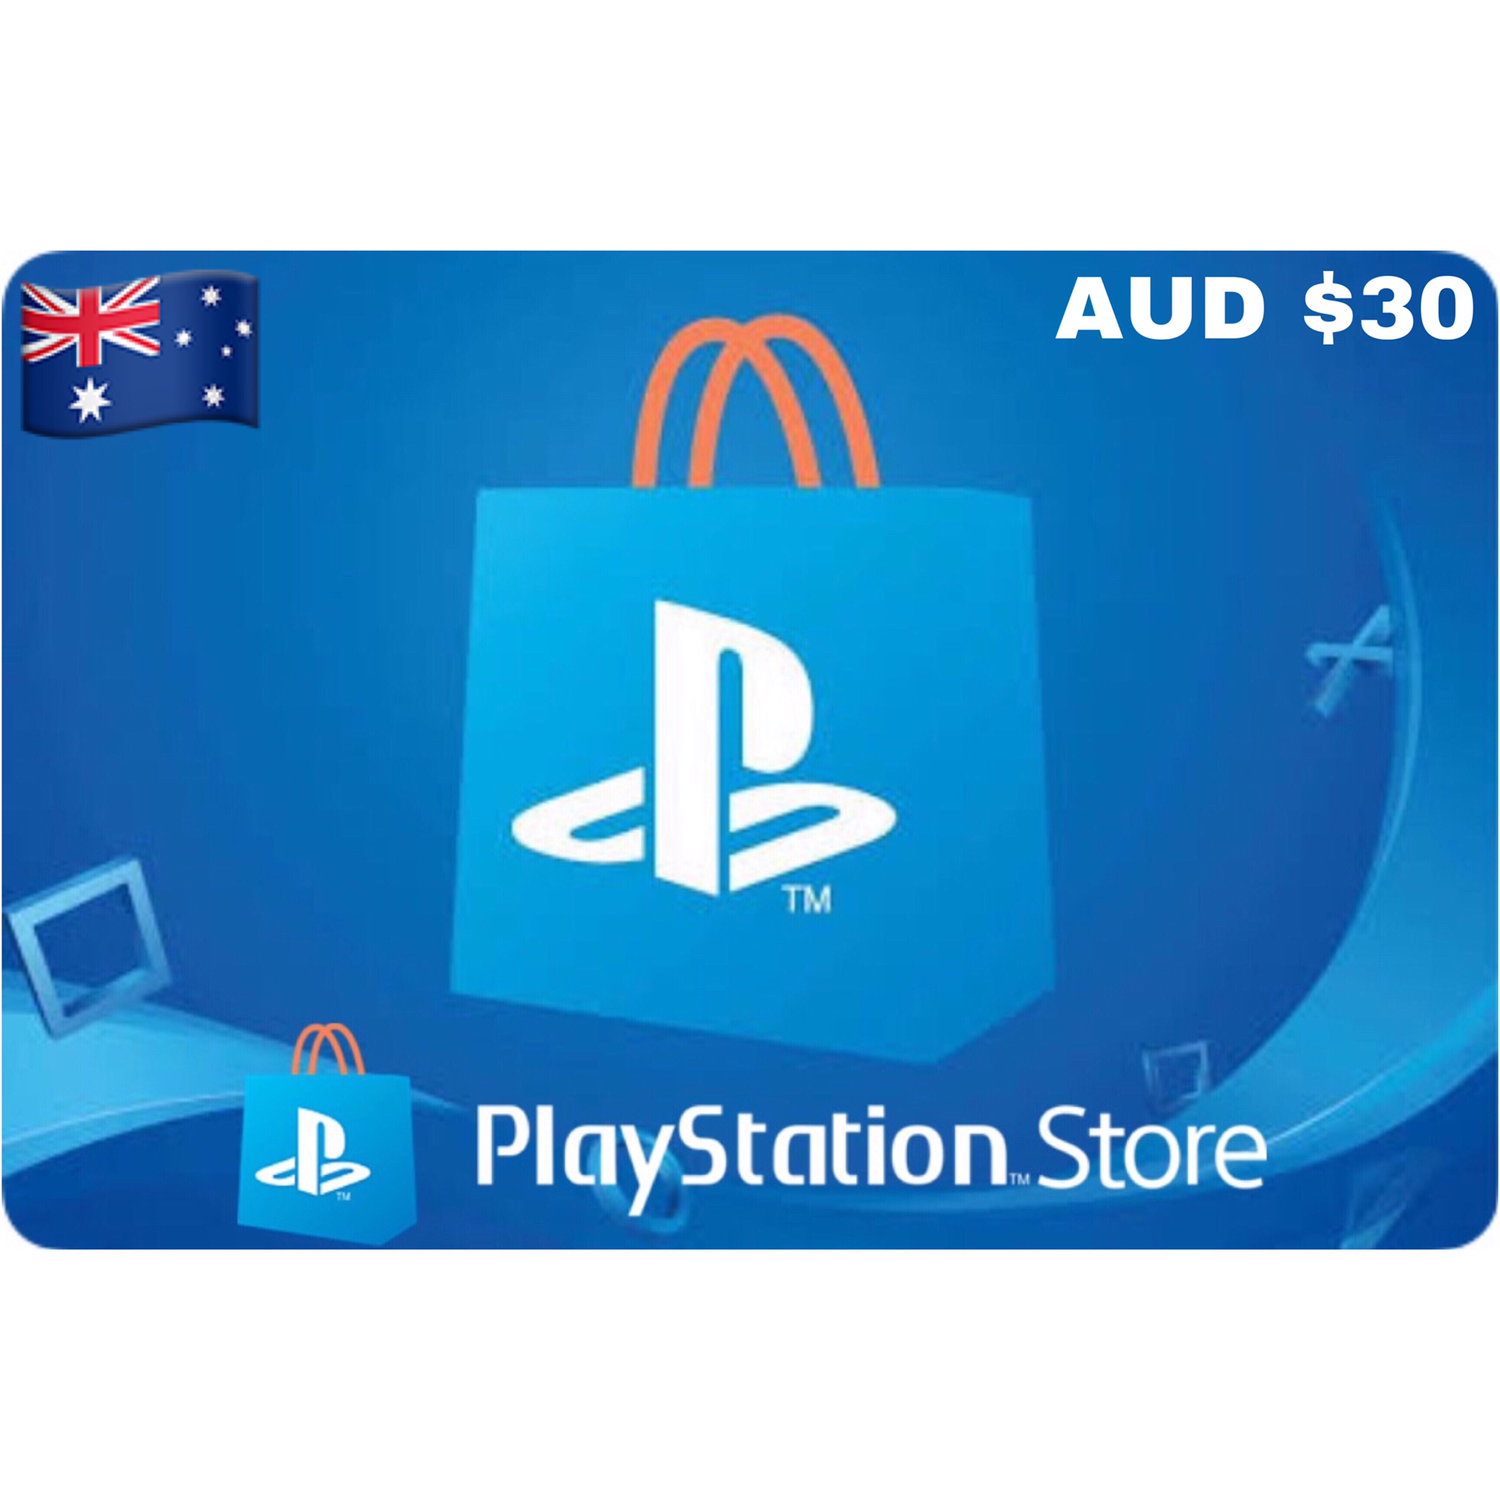 Playstation (PSN Card) AUD $30